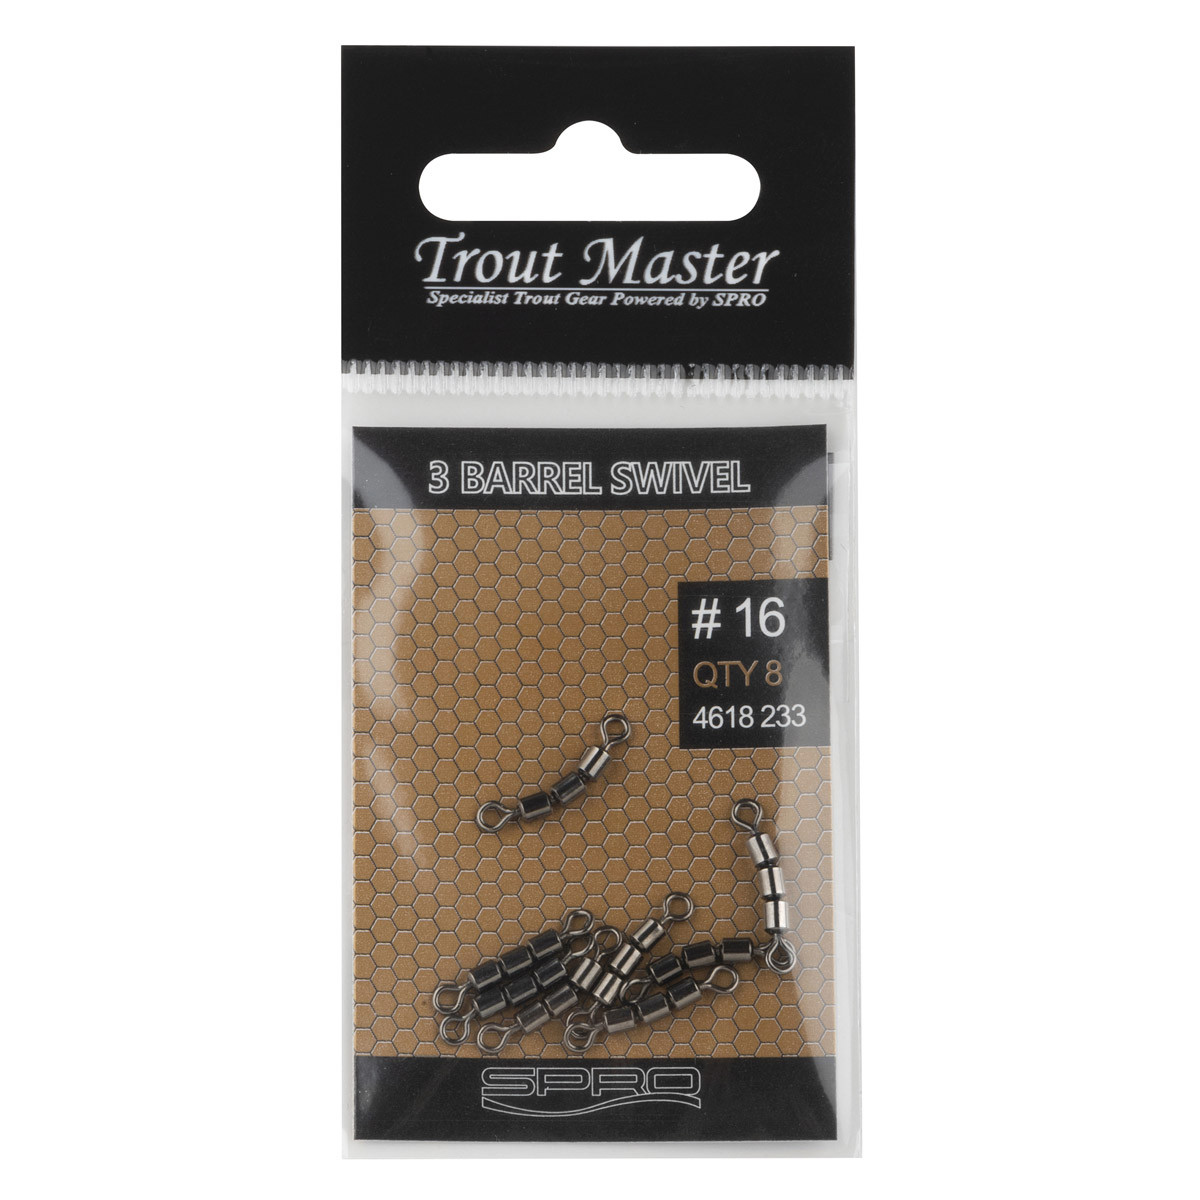 Spro Trout Master 3-Jointed Wartel